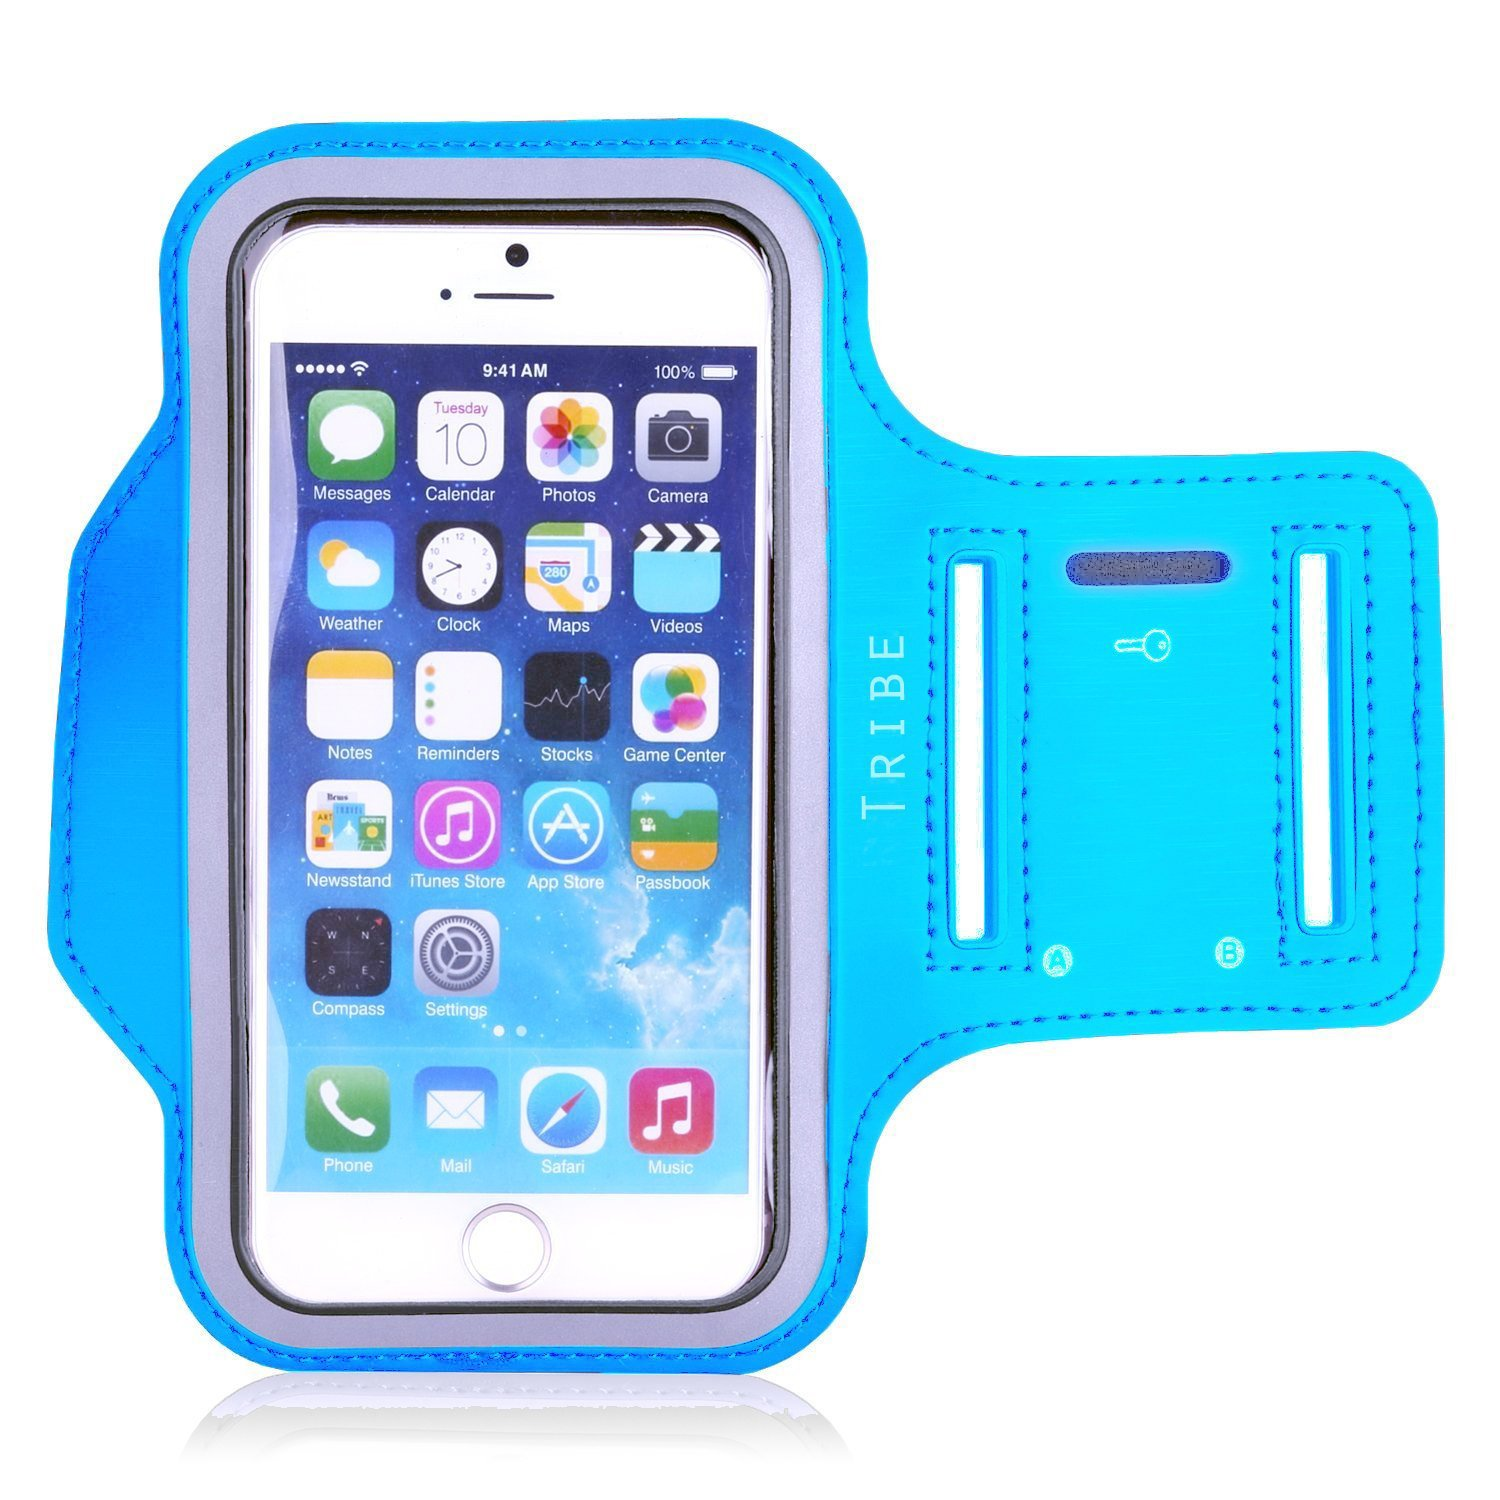 TRIBE Water Resistant Cell Phone Armband Case for iPhone 8, 7, 6, 6S, Samsung Galaxy S9, S8, S7, S6 with Adjustable Elastic Band & Key Holder for Running, Walking, Hiking AB37